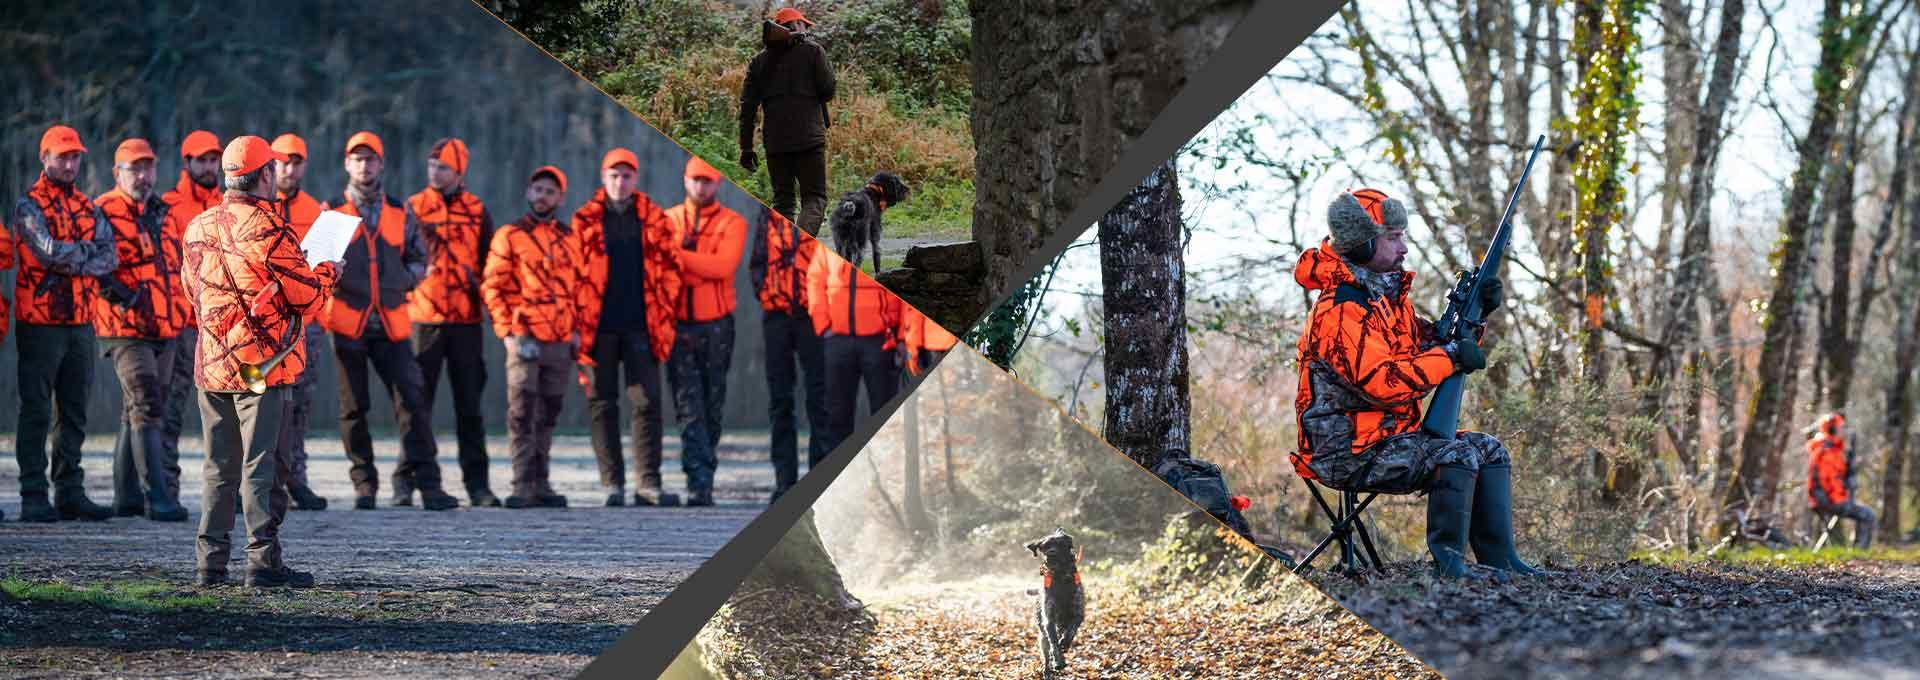 Ouverture chasse 2019